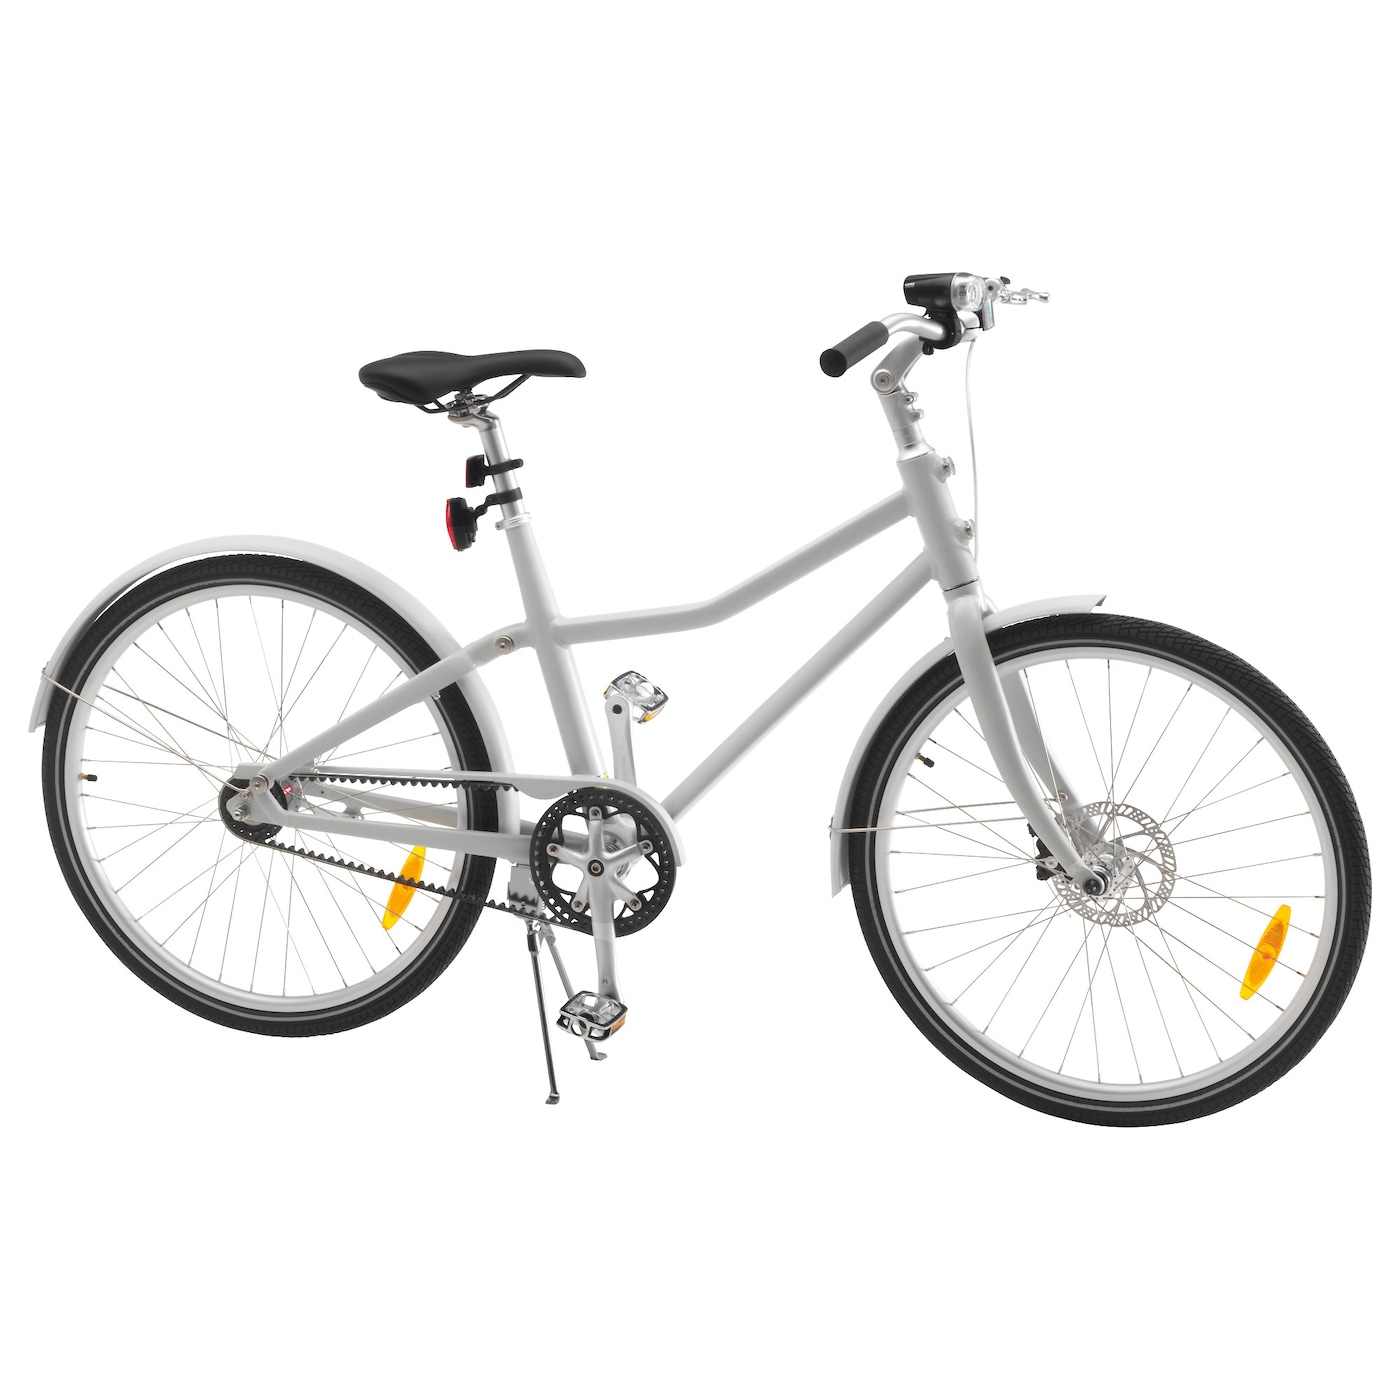 IKEA SLADDA bicycle The front disc brake and rear coaster brake gives efficient braking.